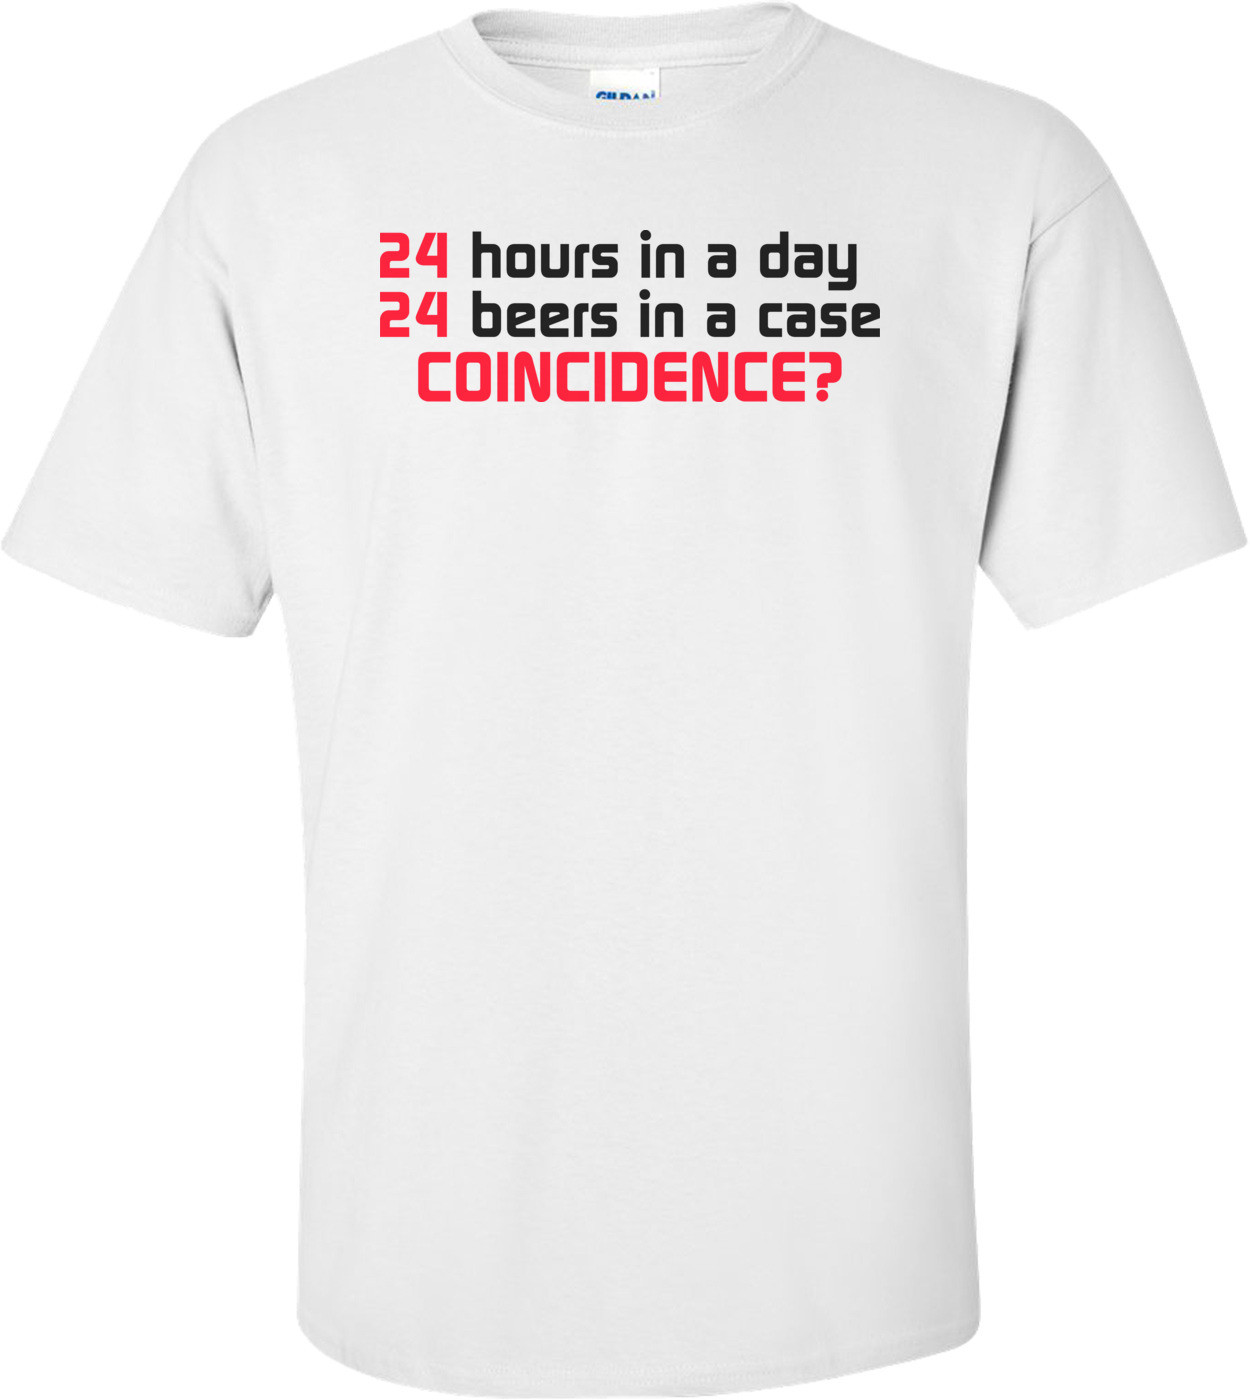 24 Hours In A Day, 24 Beers In A Case. Coincidence? Shirt